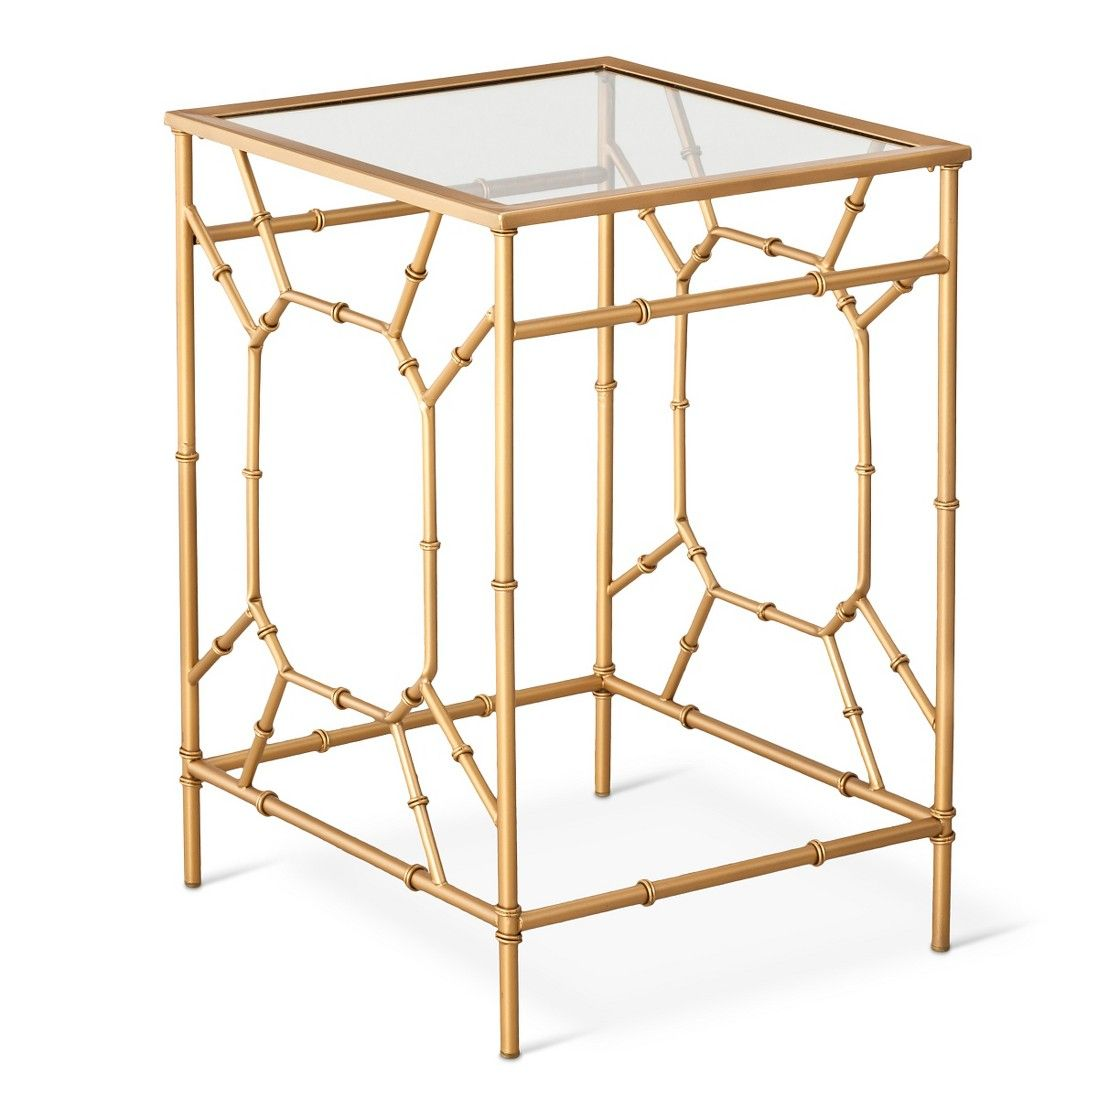 threshold bamboo motif accent table gold apartment livin narrow outdoor piece and chairs chairside with drawers upcycled west elm wall desk square drinking glasses battery powered